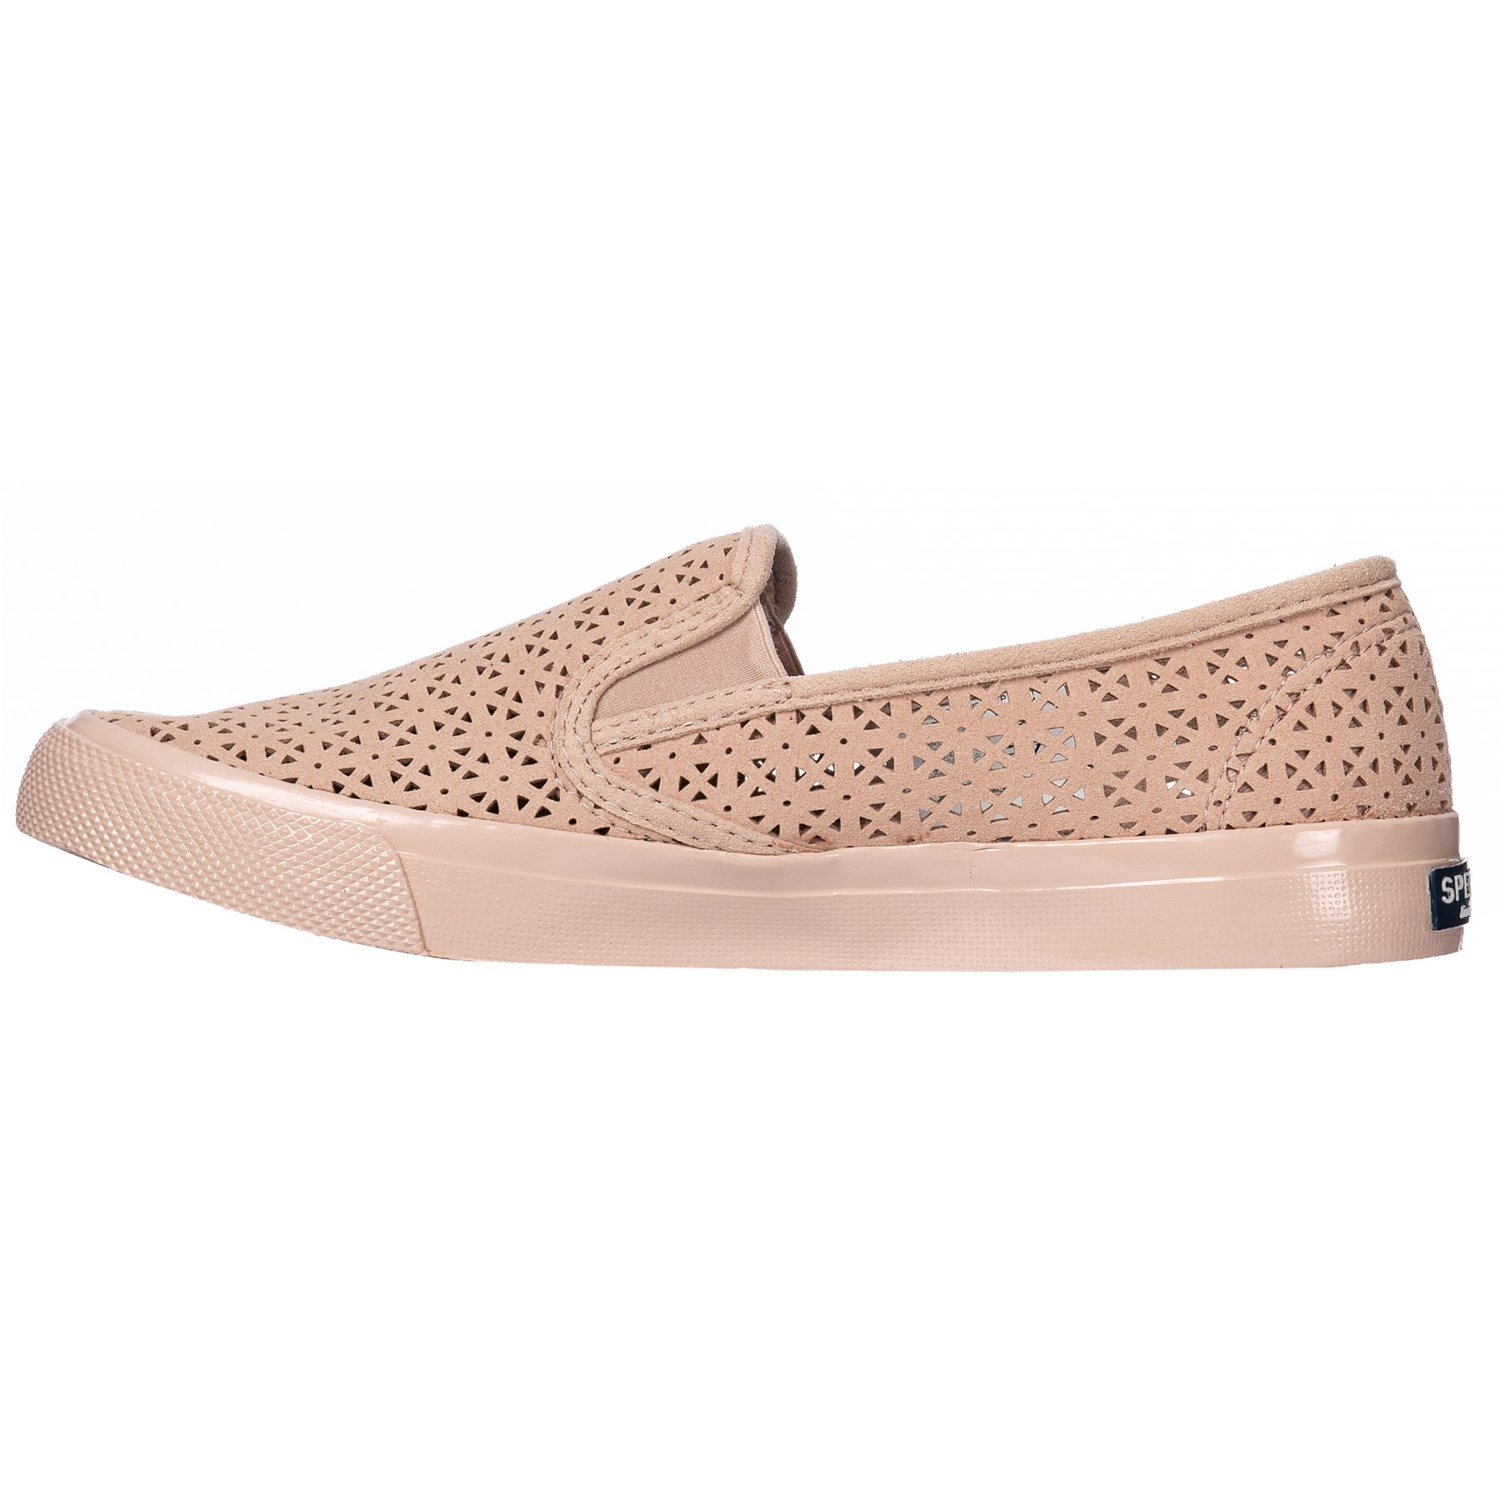 d58aa0a9f409 Sperry Seaside Perforated Sneakers (For Women)